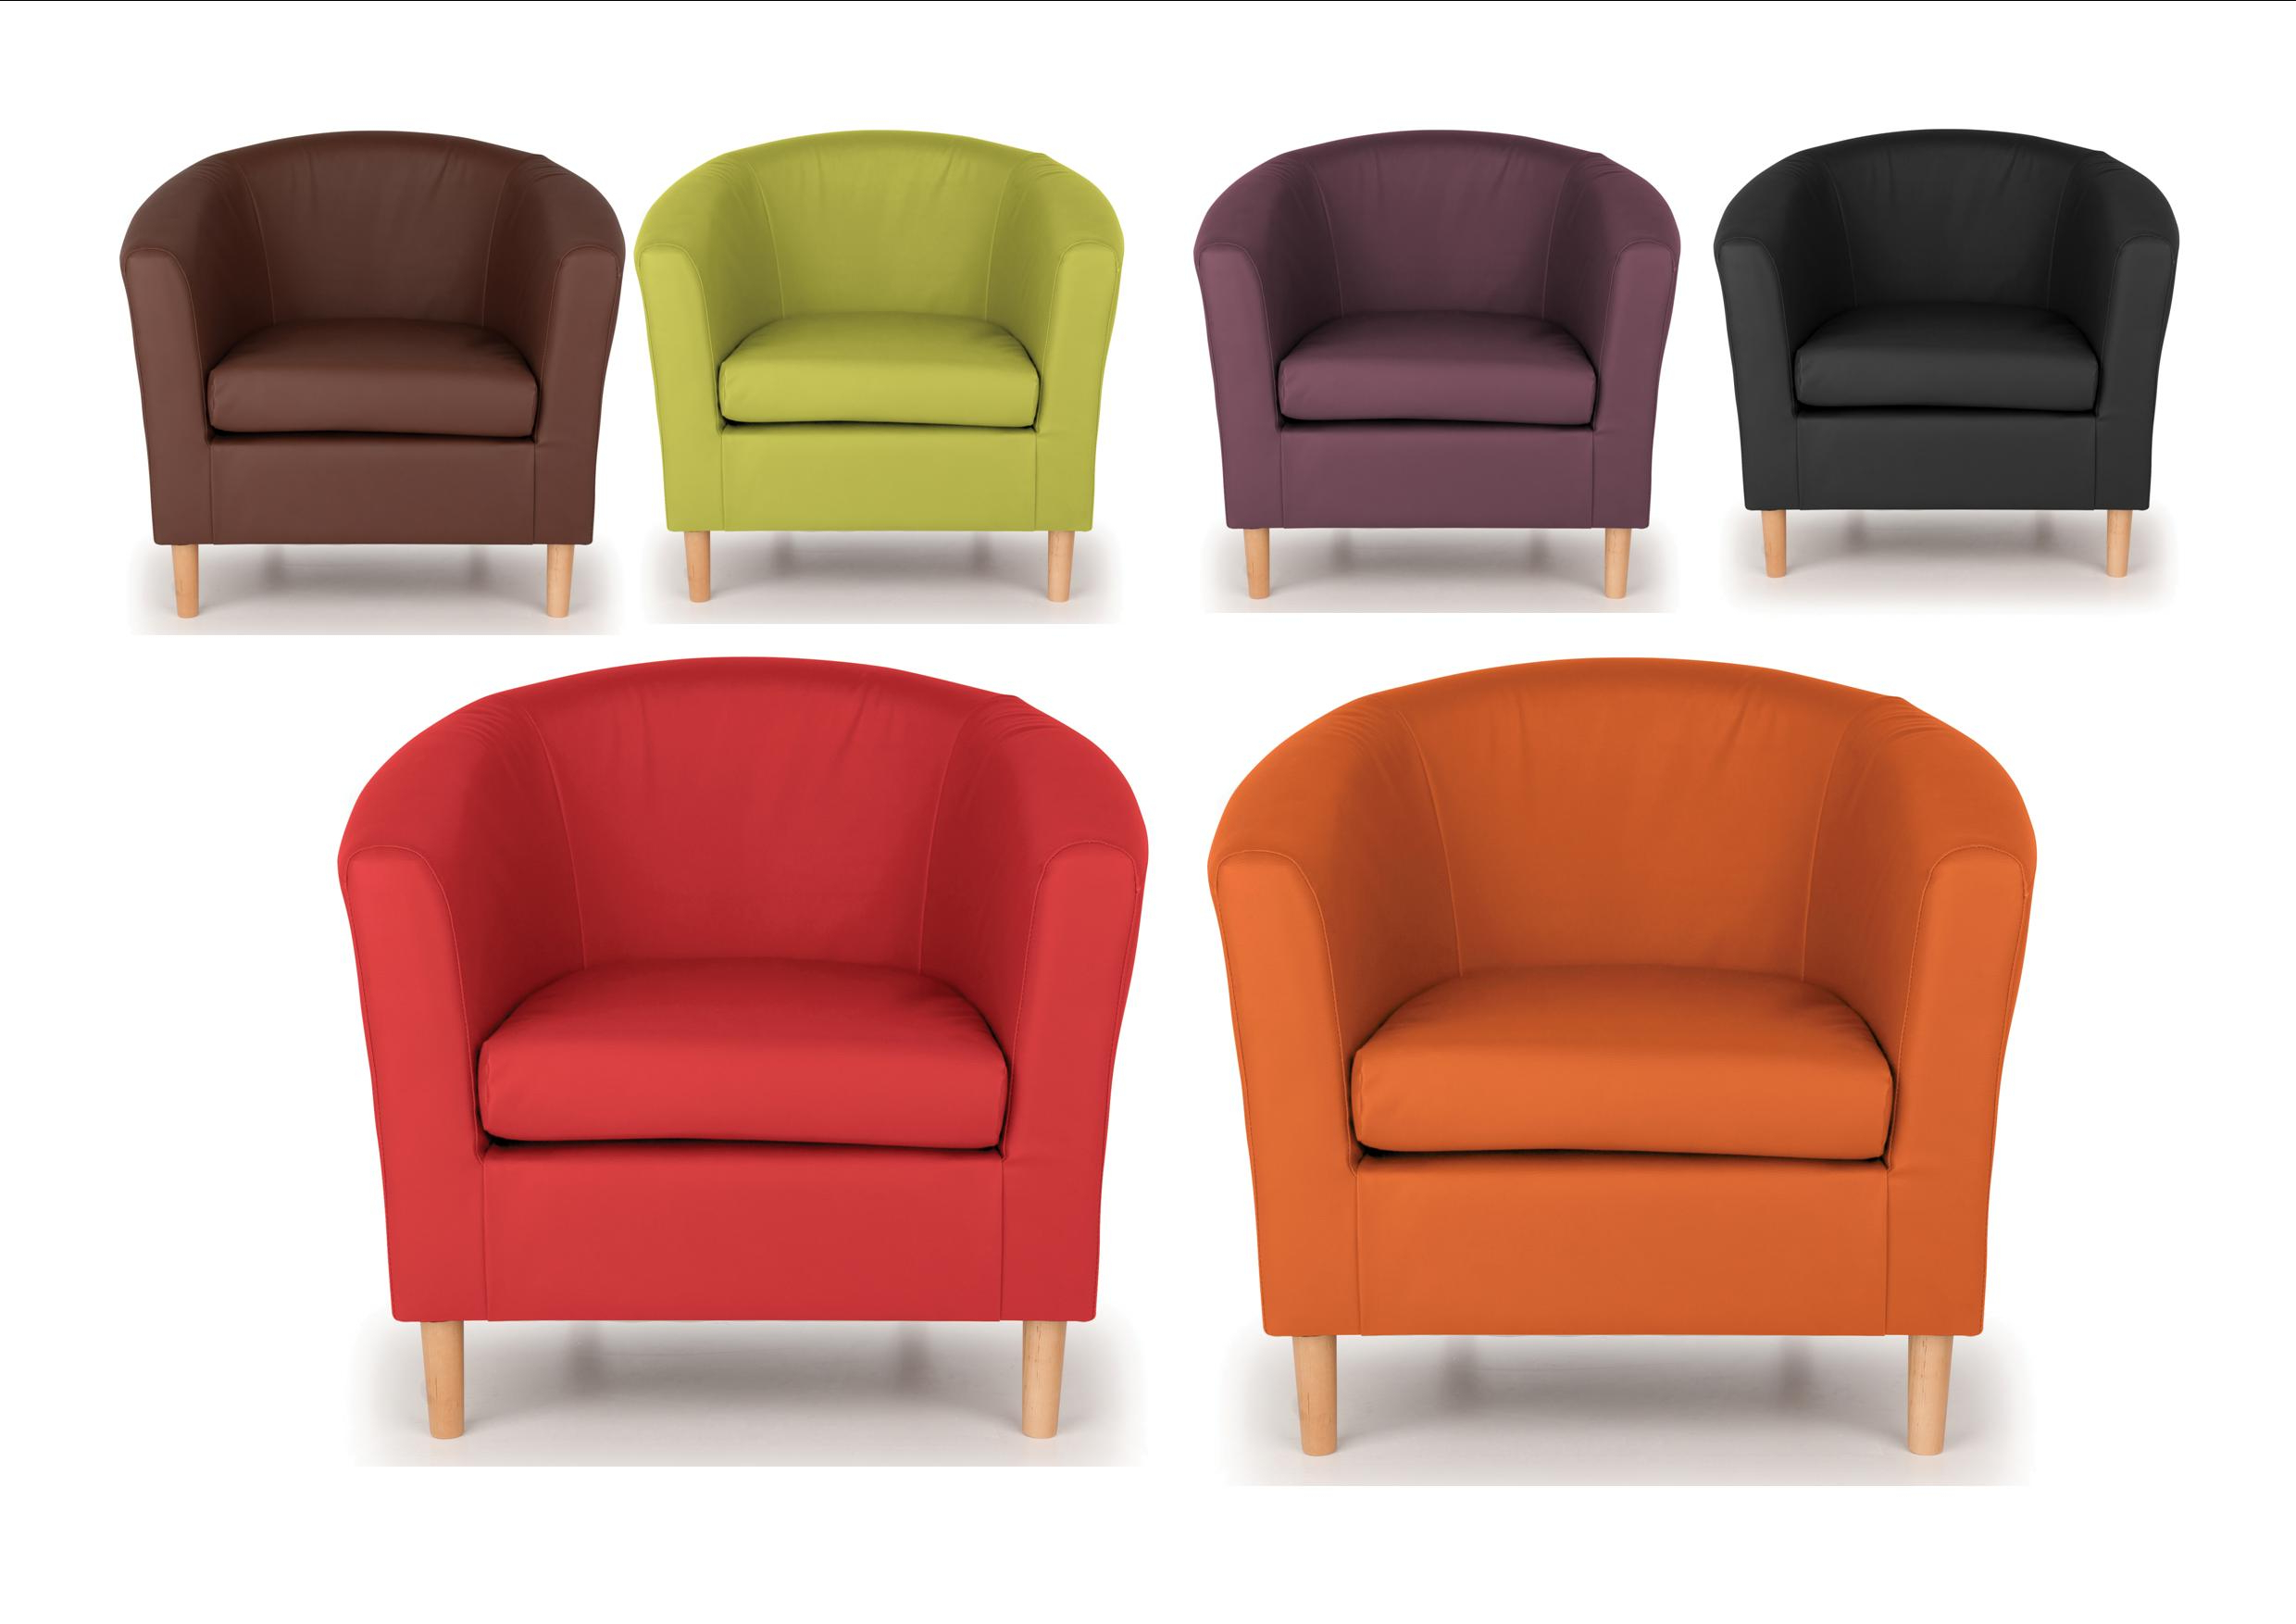 Montenegro Faux Leather Club Chairs With Regard To Well Known Details About Nicole Tub Chairs – Brown, Black Lime, Orange, Plum, Red – Modern Design (View 7 of 20)